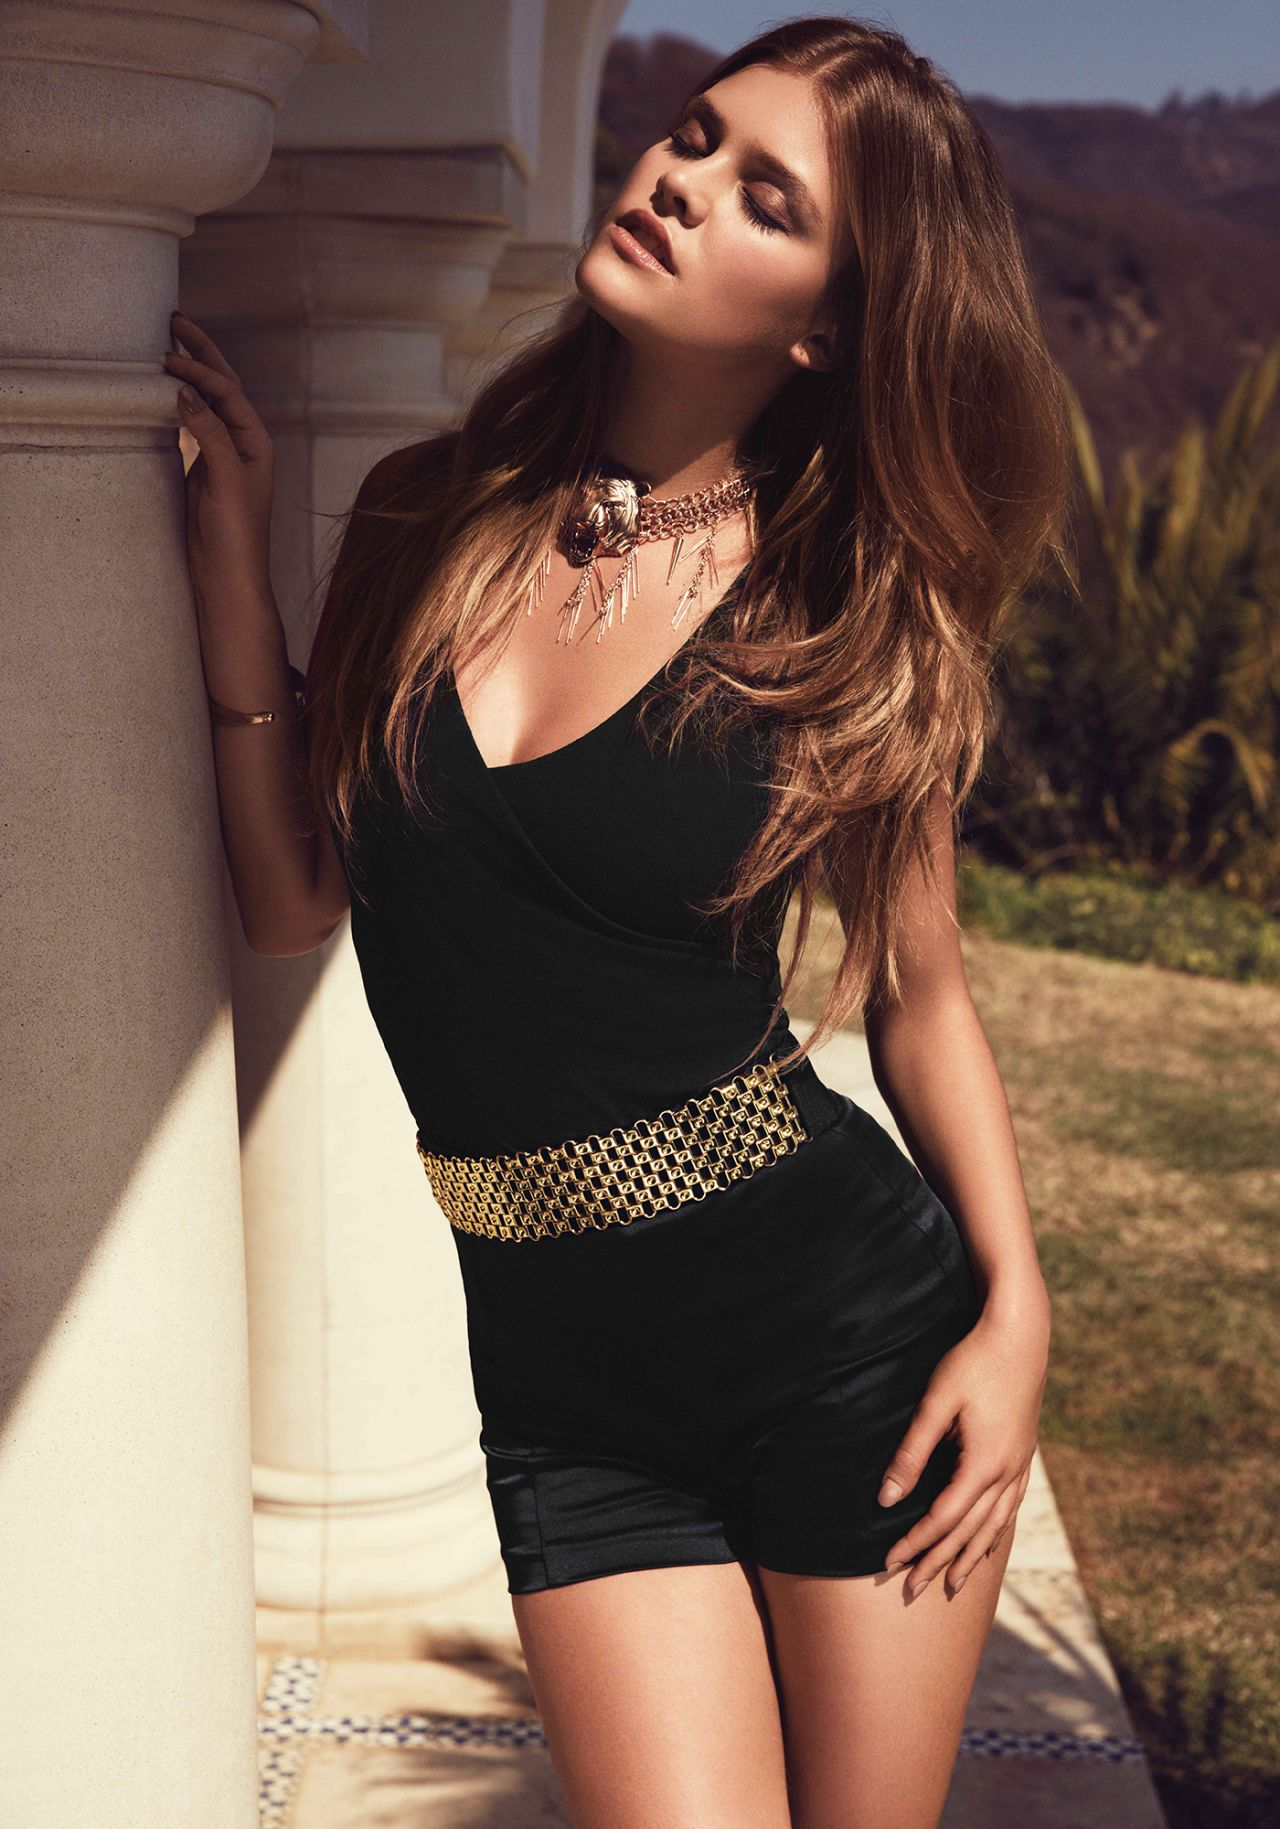 Nina Agdal Photoshoot – Bebe Summer 2014